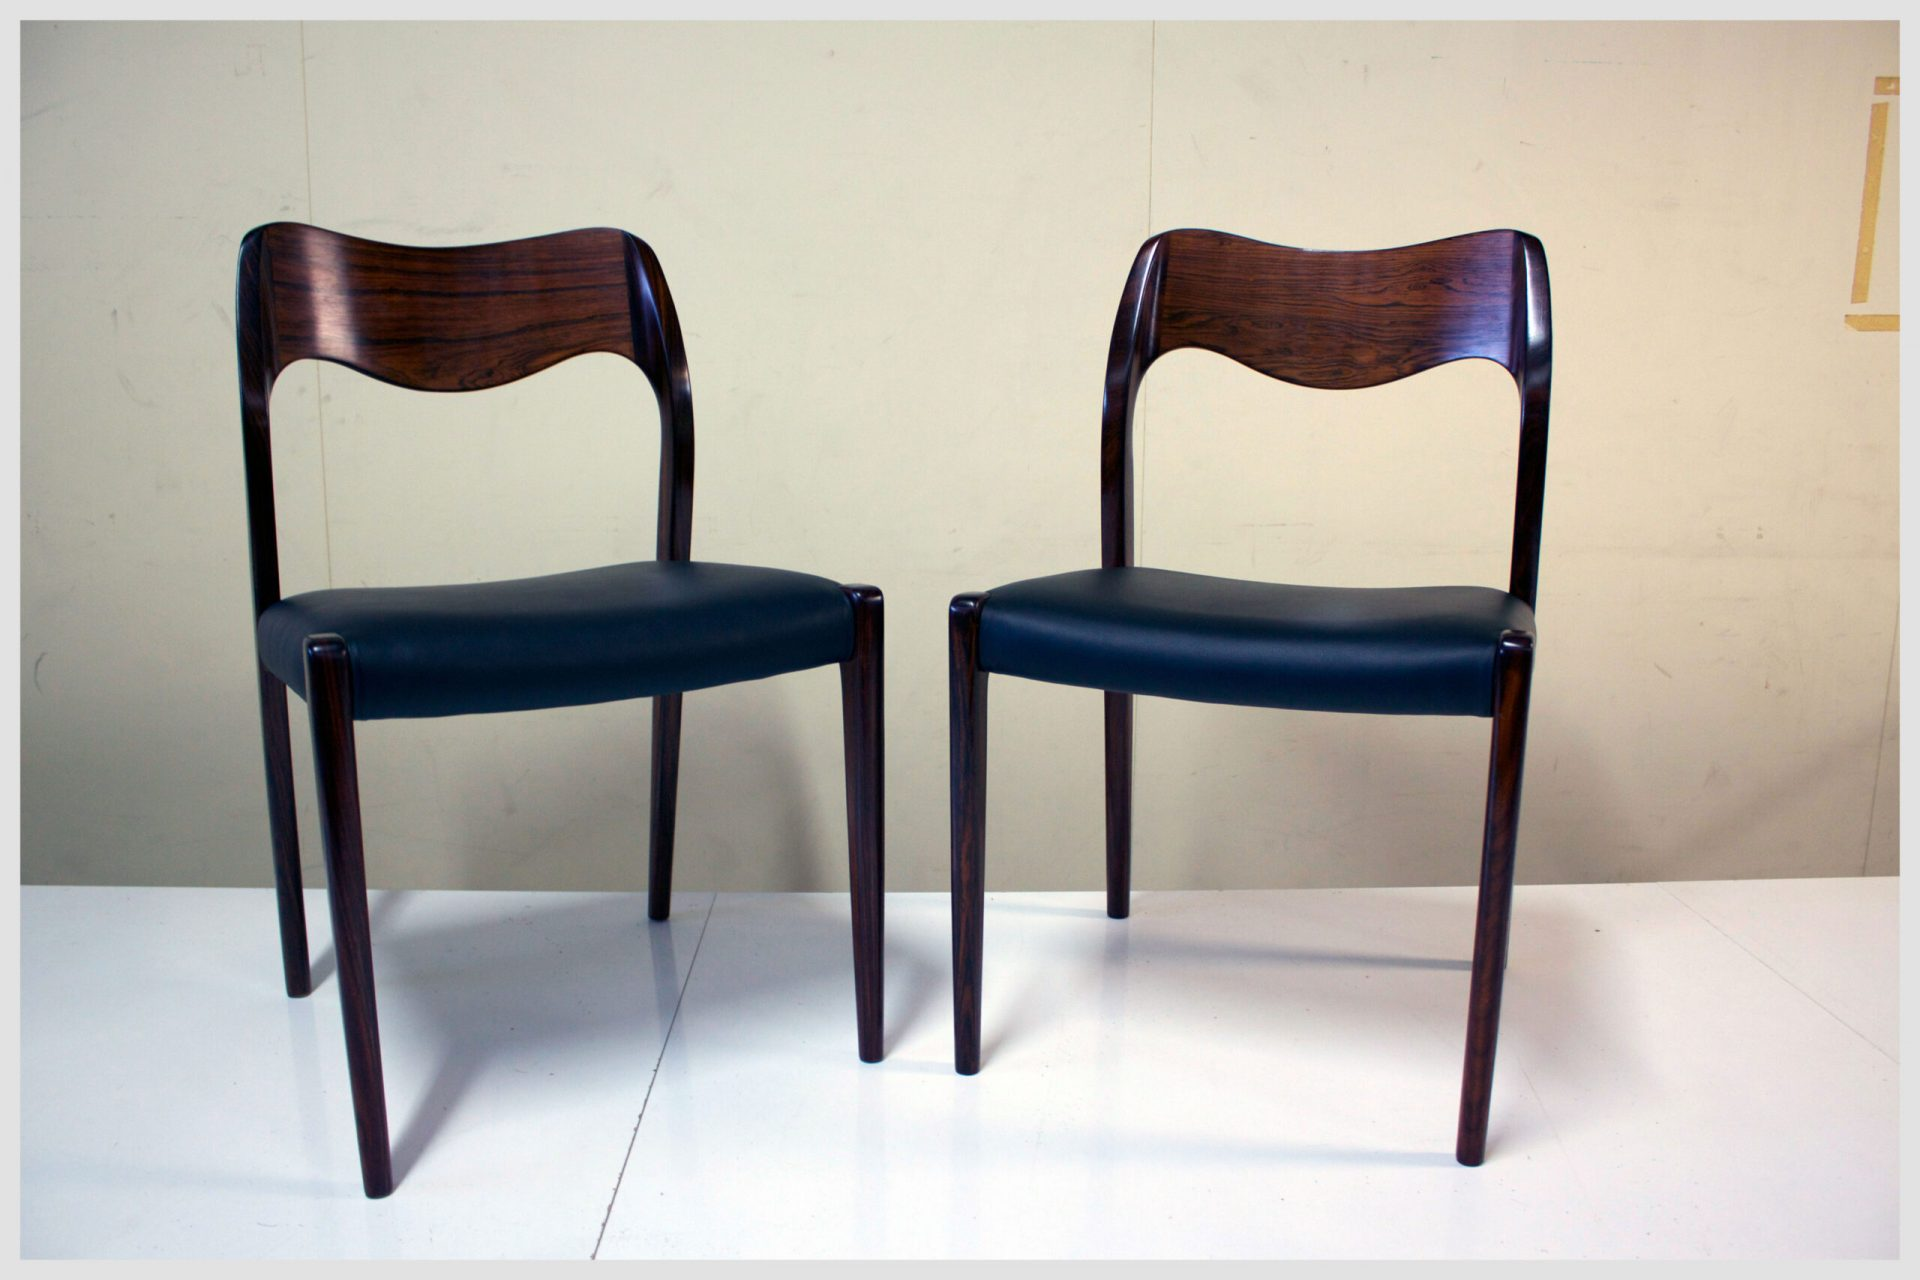 Moller # 71 Rosewood Chairs